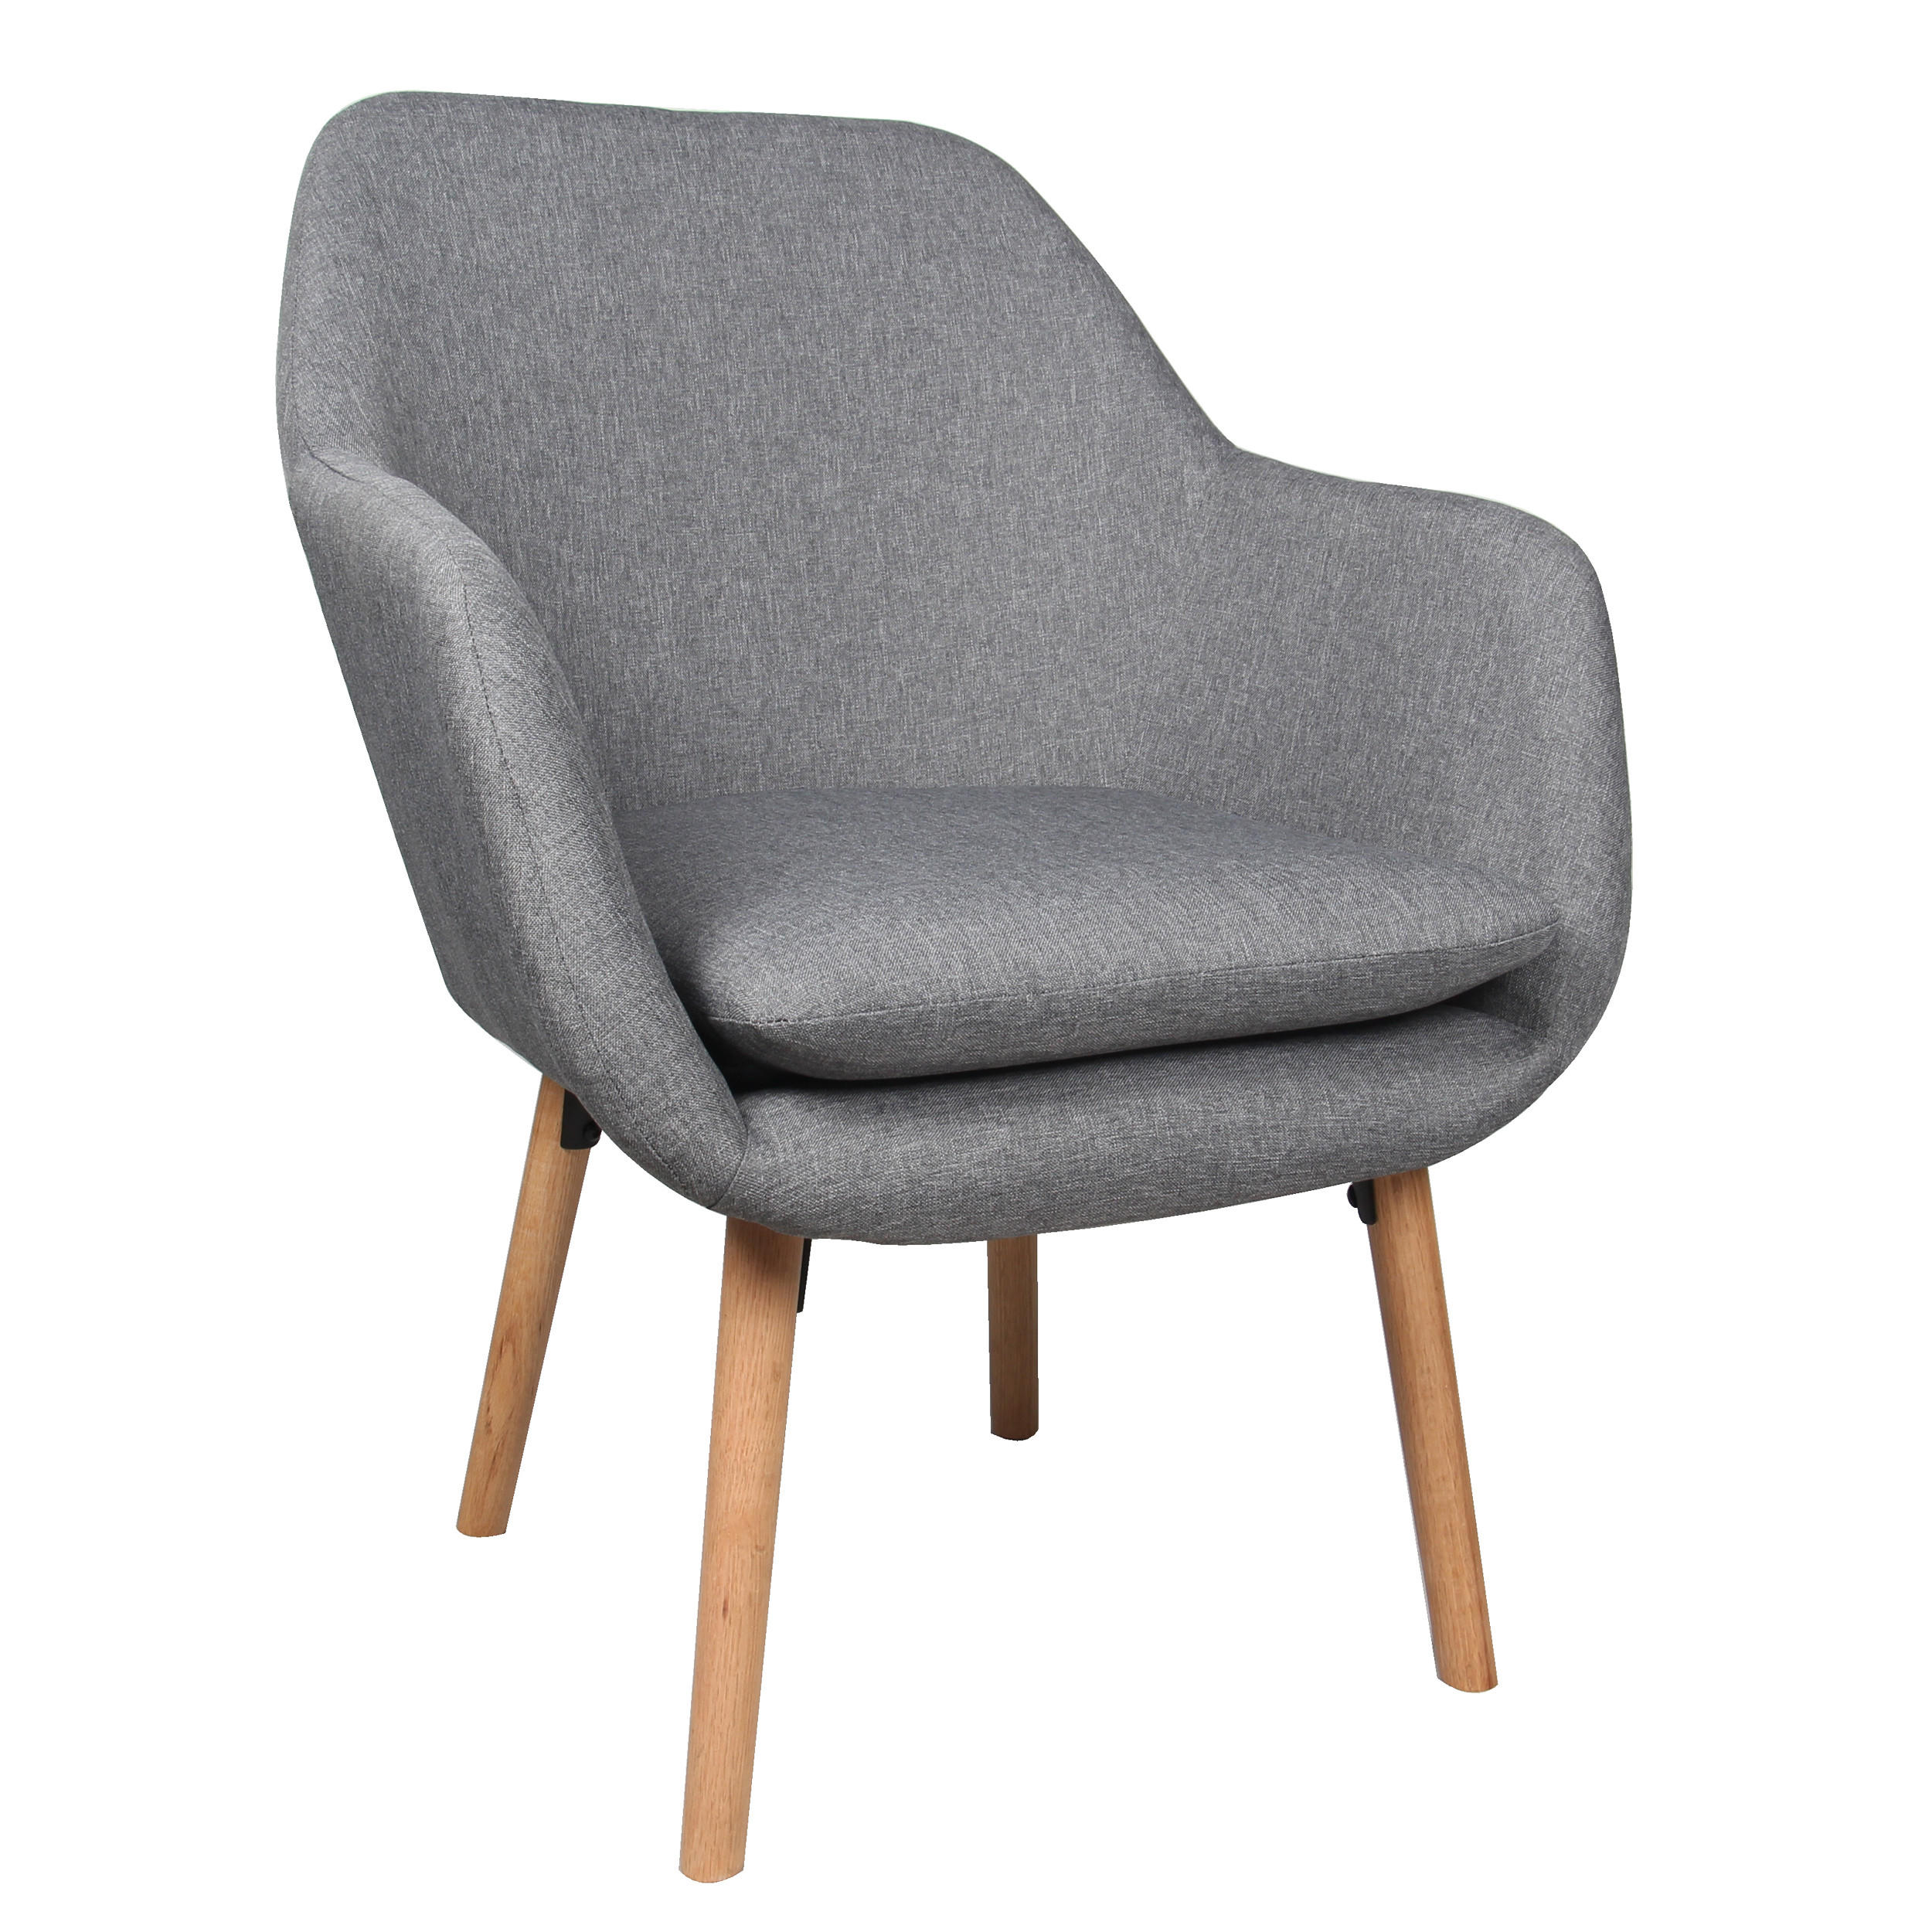 Moustache Accent Chairs Living Room Chair Modern Fabric Sofa Arm Chair Armchair With Cushion Seat Beech Wood Legs Gray